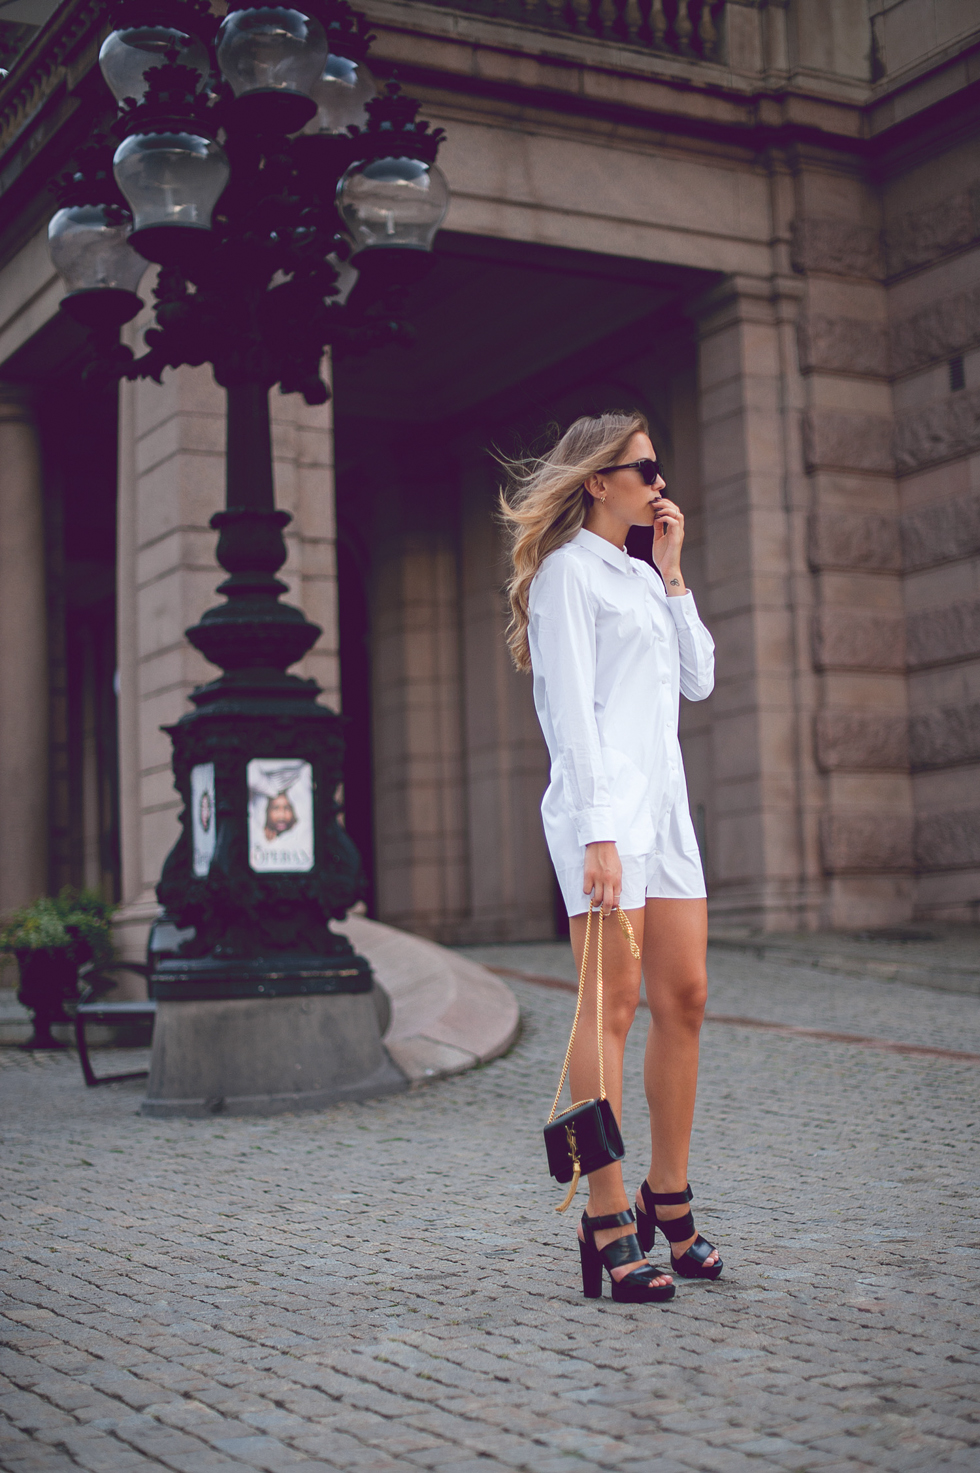 Kenza Zouiten is wearing a crisp whiye shirt dress from Acne, bag from Saint Laurent, sunglasses from Prada and shoes from Zara